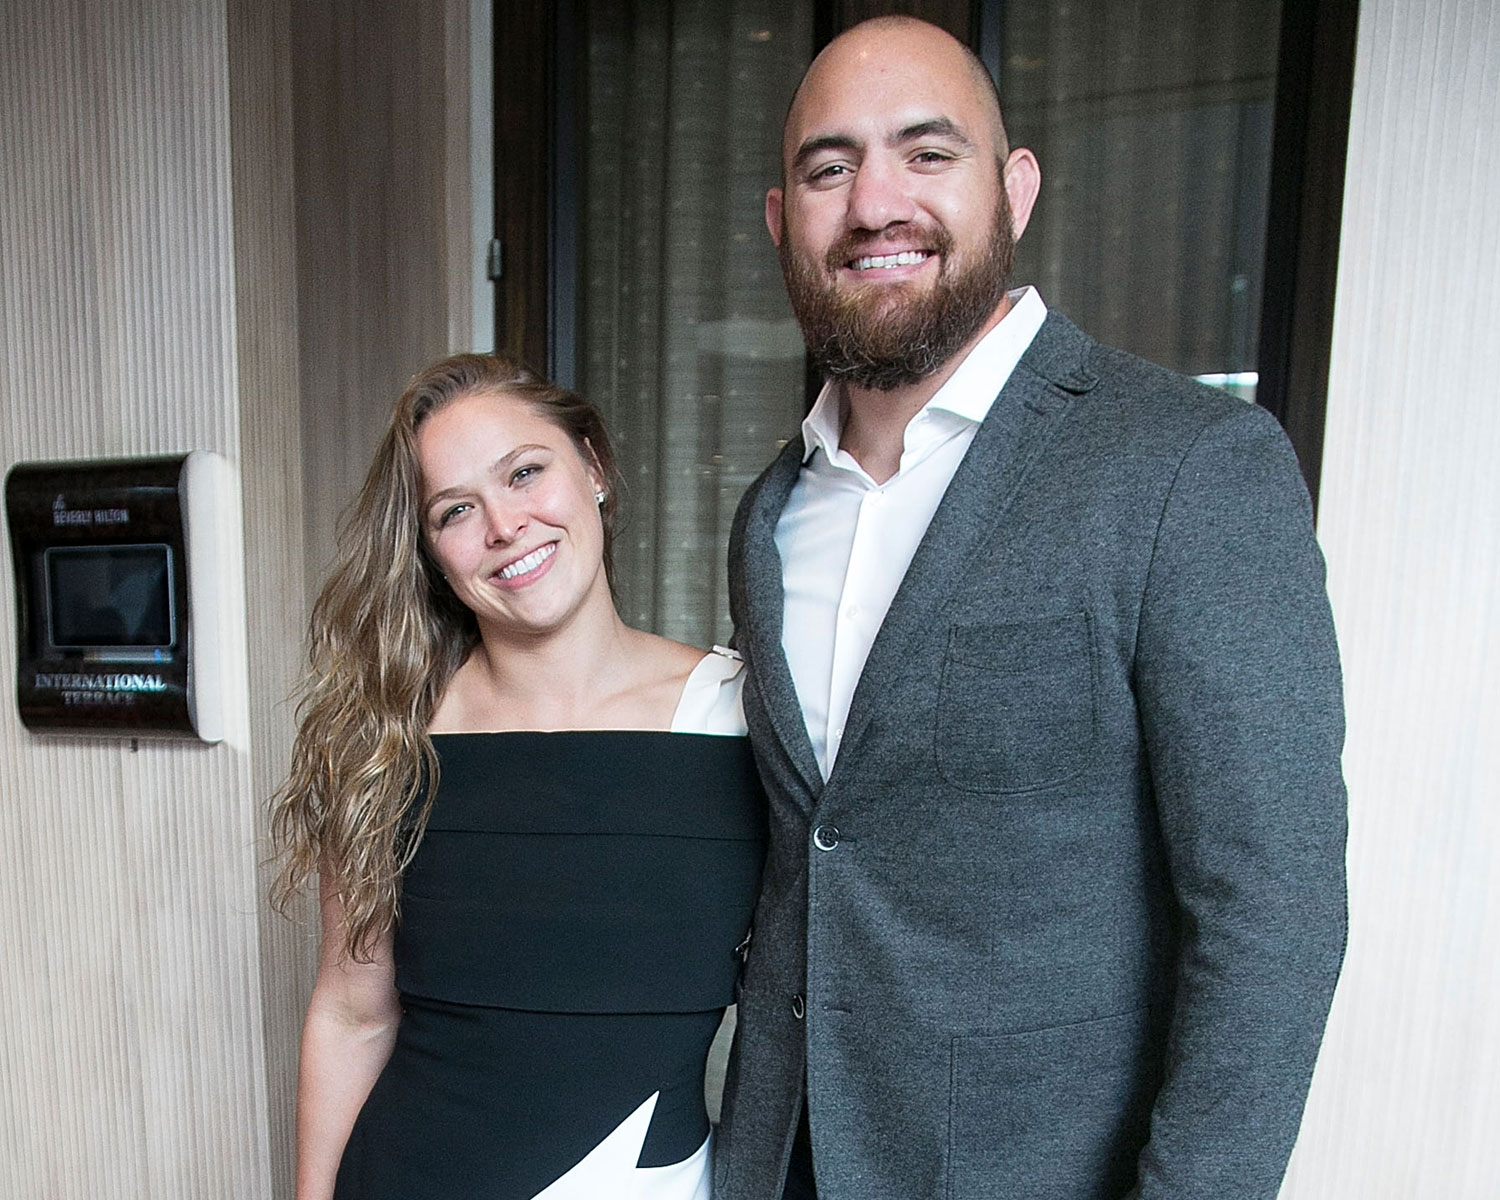 Ronda Rousey Engaged